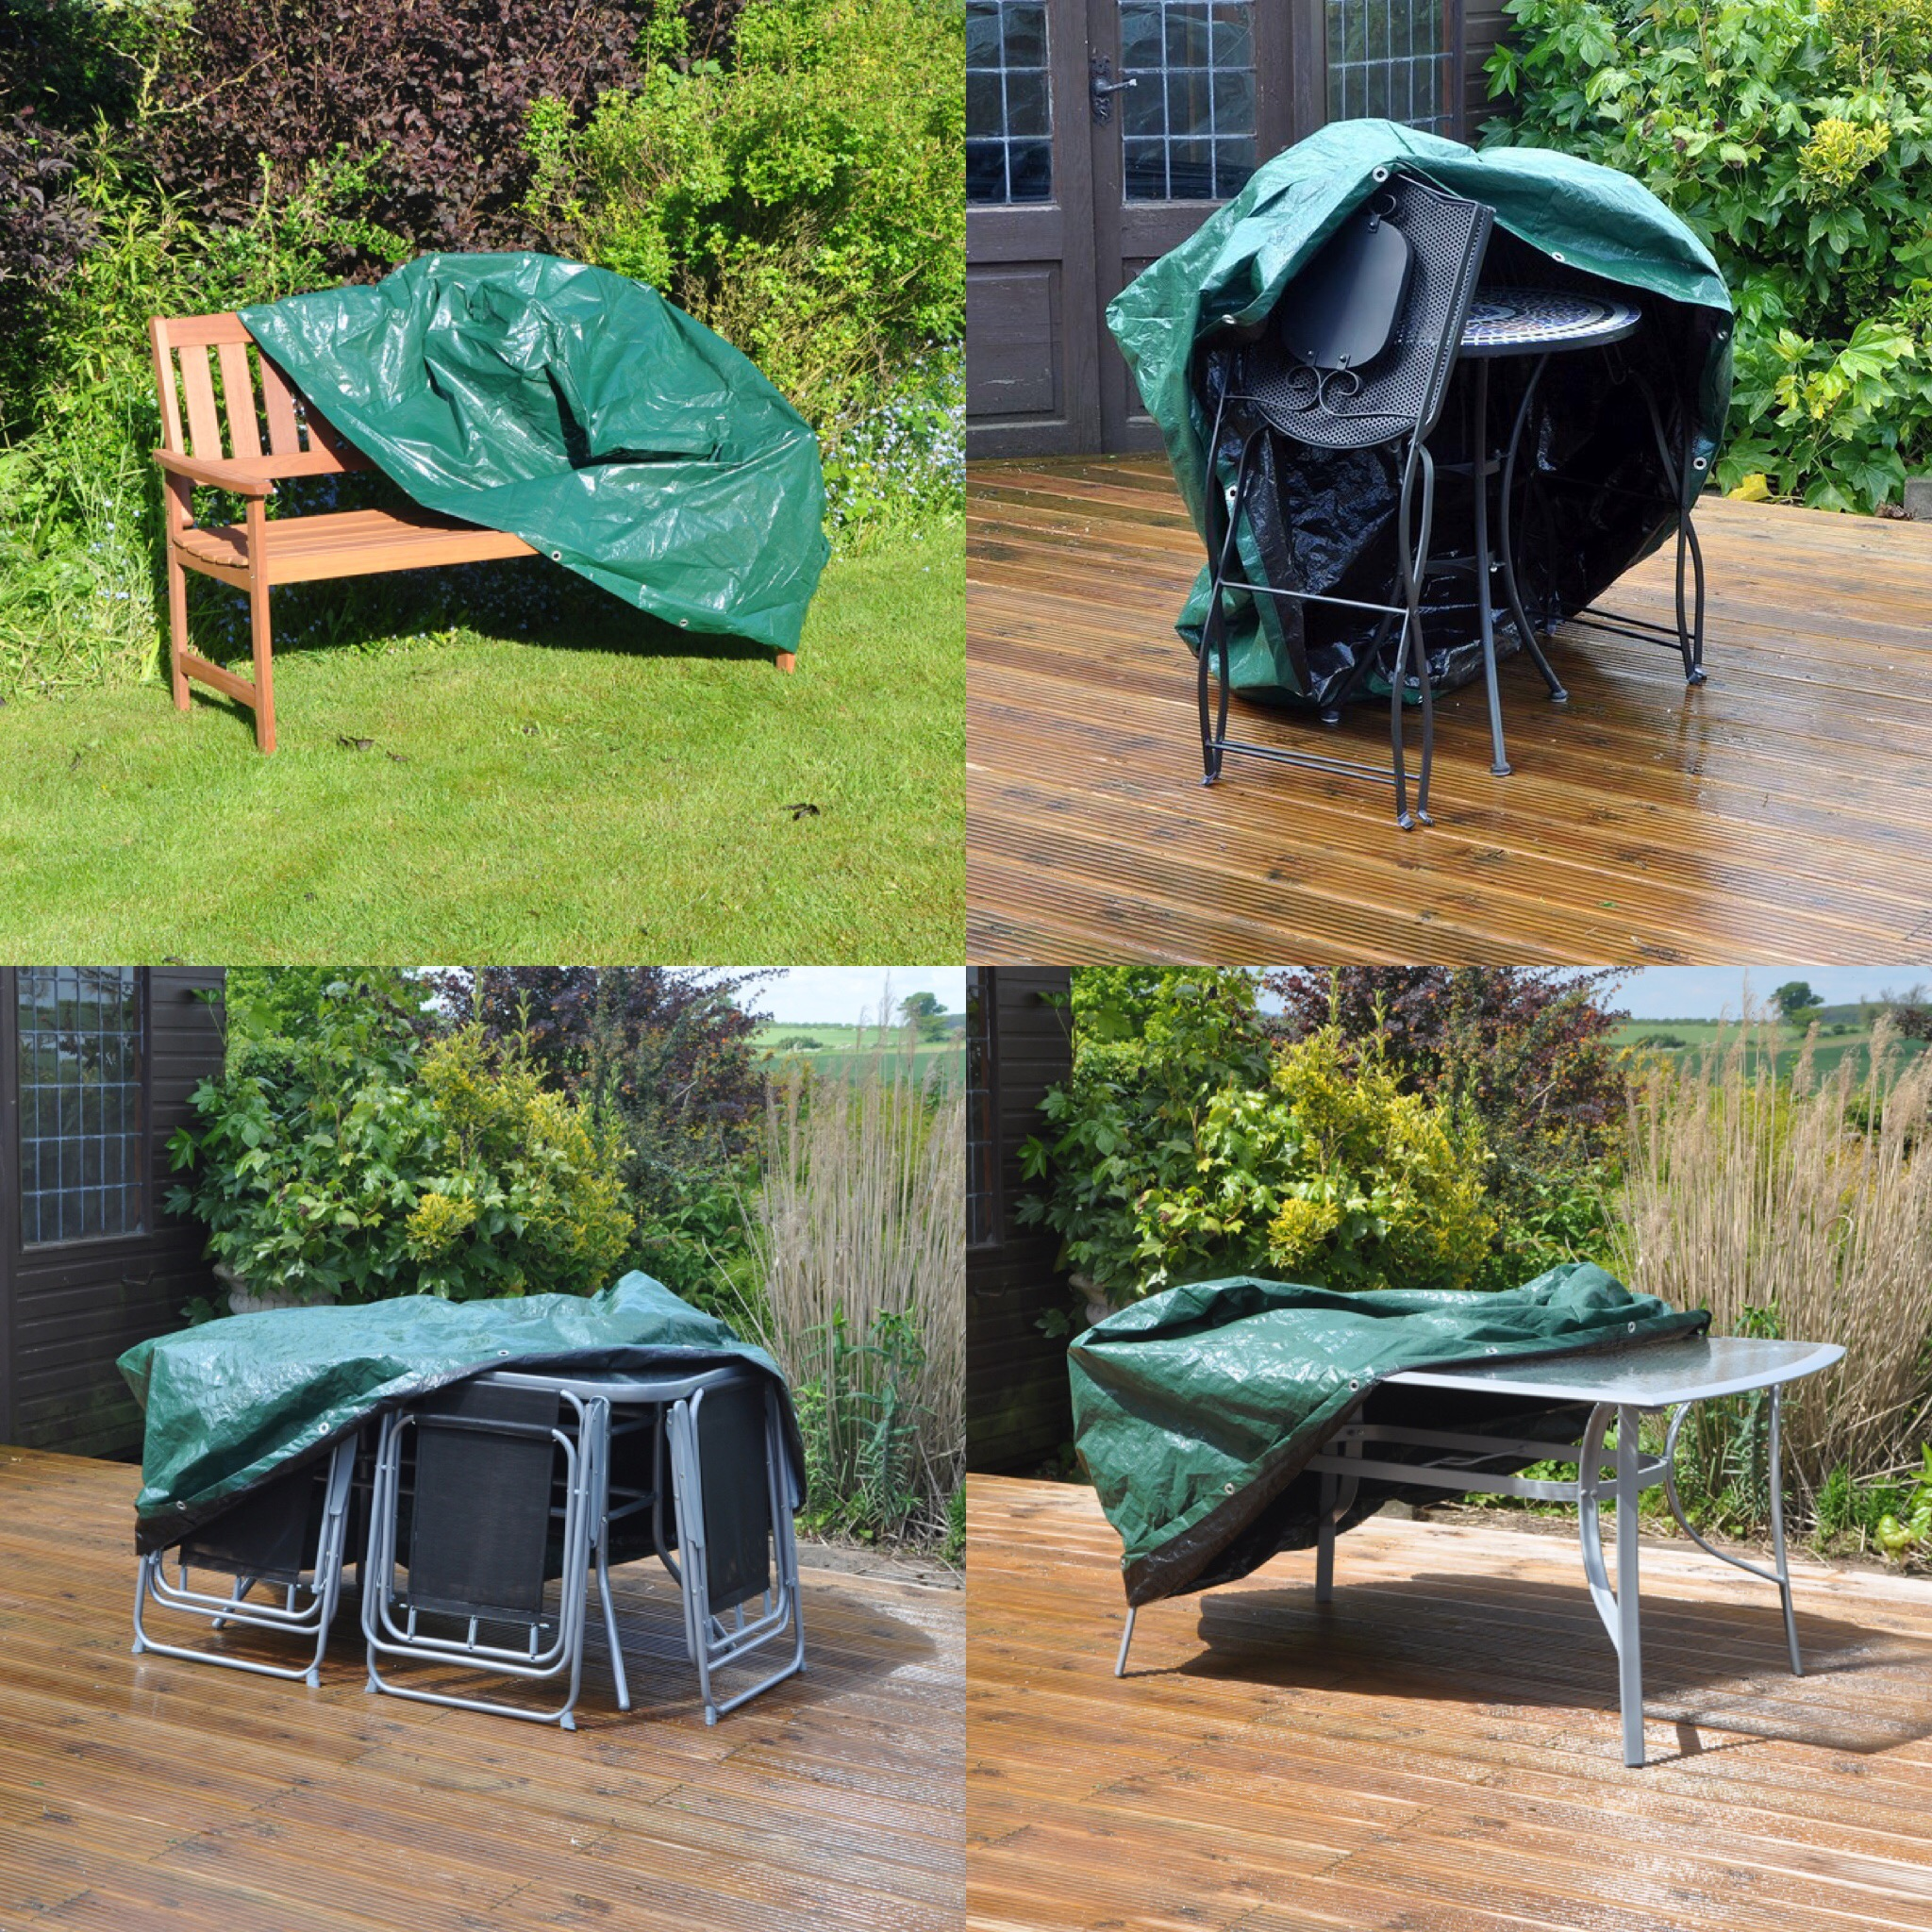 New Kingfisher Large Garden Furniture Waterproof Protector